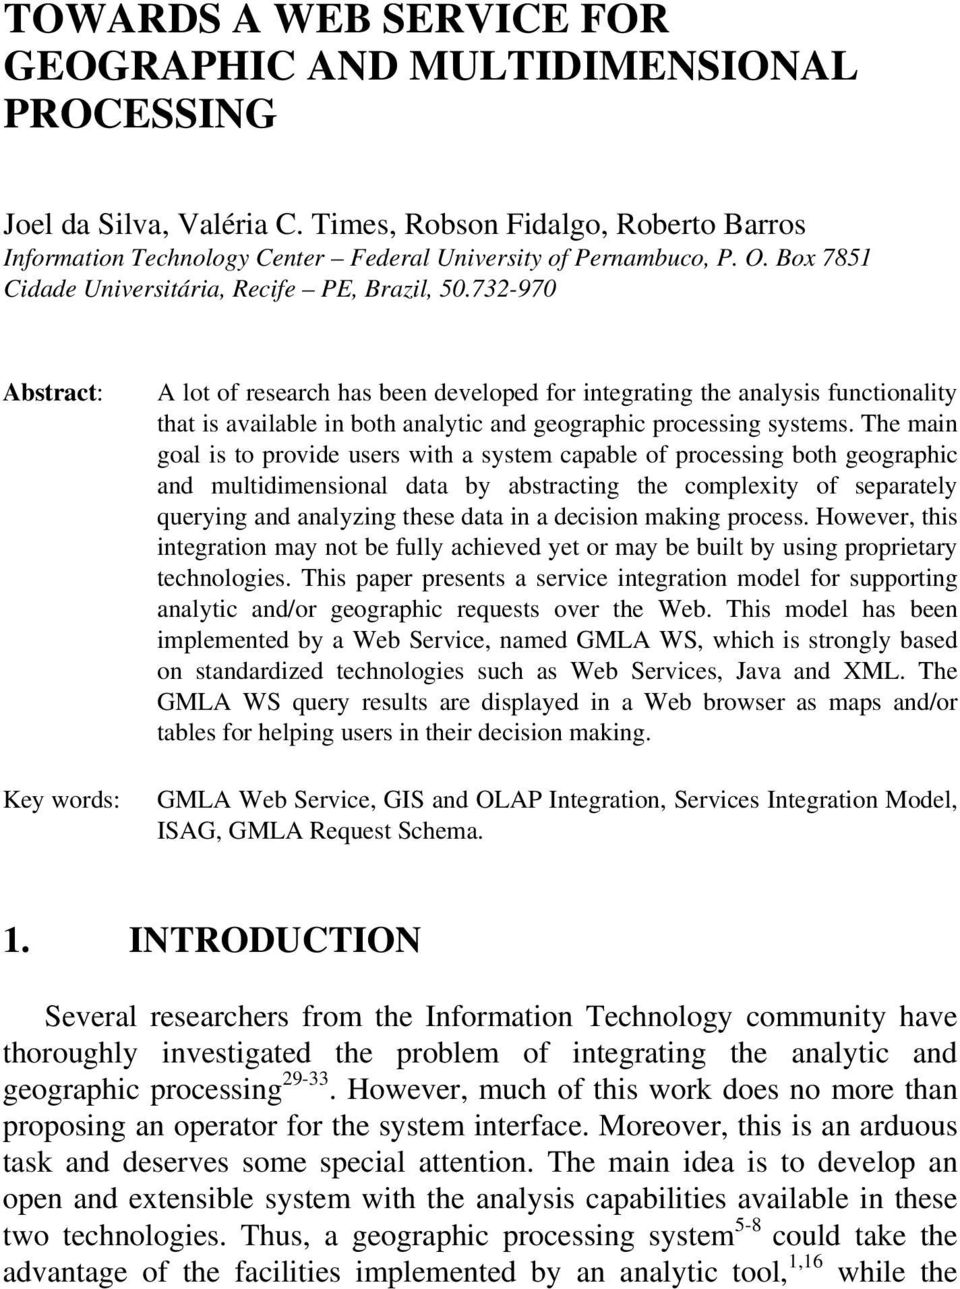 732-970 Abstract: Key words: A lot of research has been developed for integrating the analysis functionality that is available in both analytic and geographic processing systems.